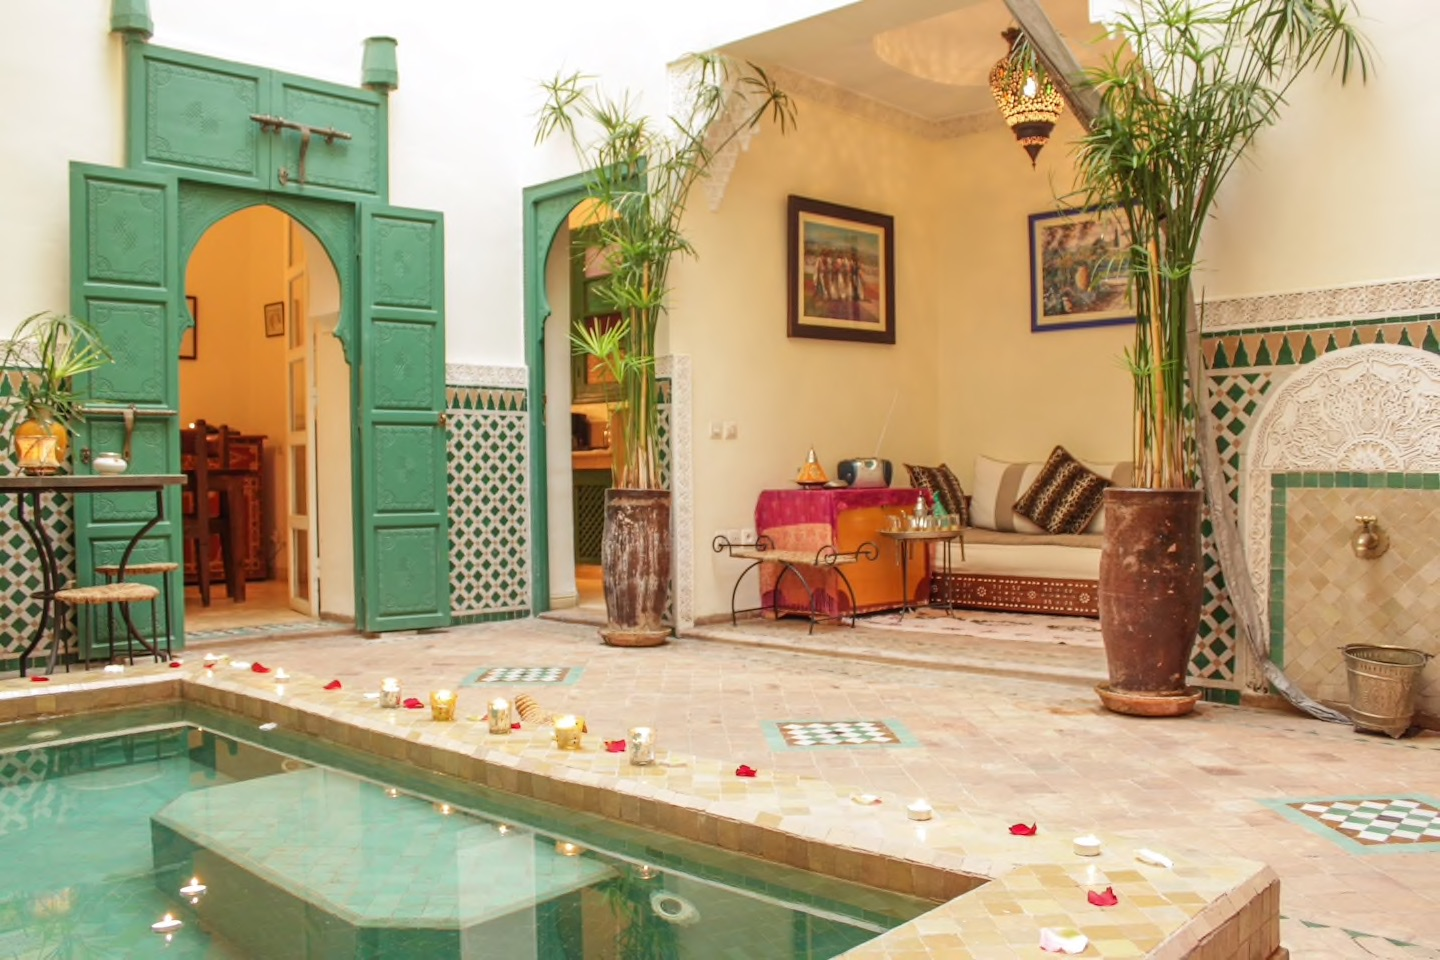 10 Airbnbs in Marrakech for a Colourful Moroccan Holiday